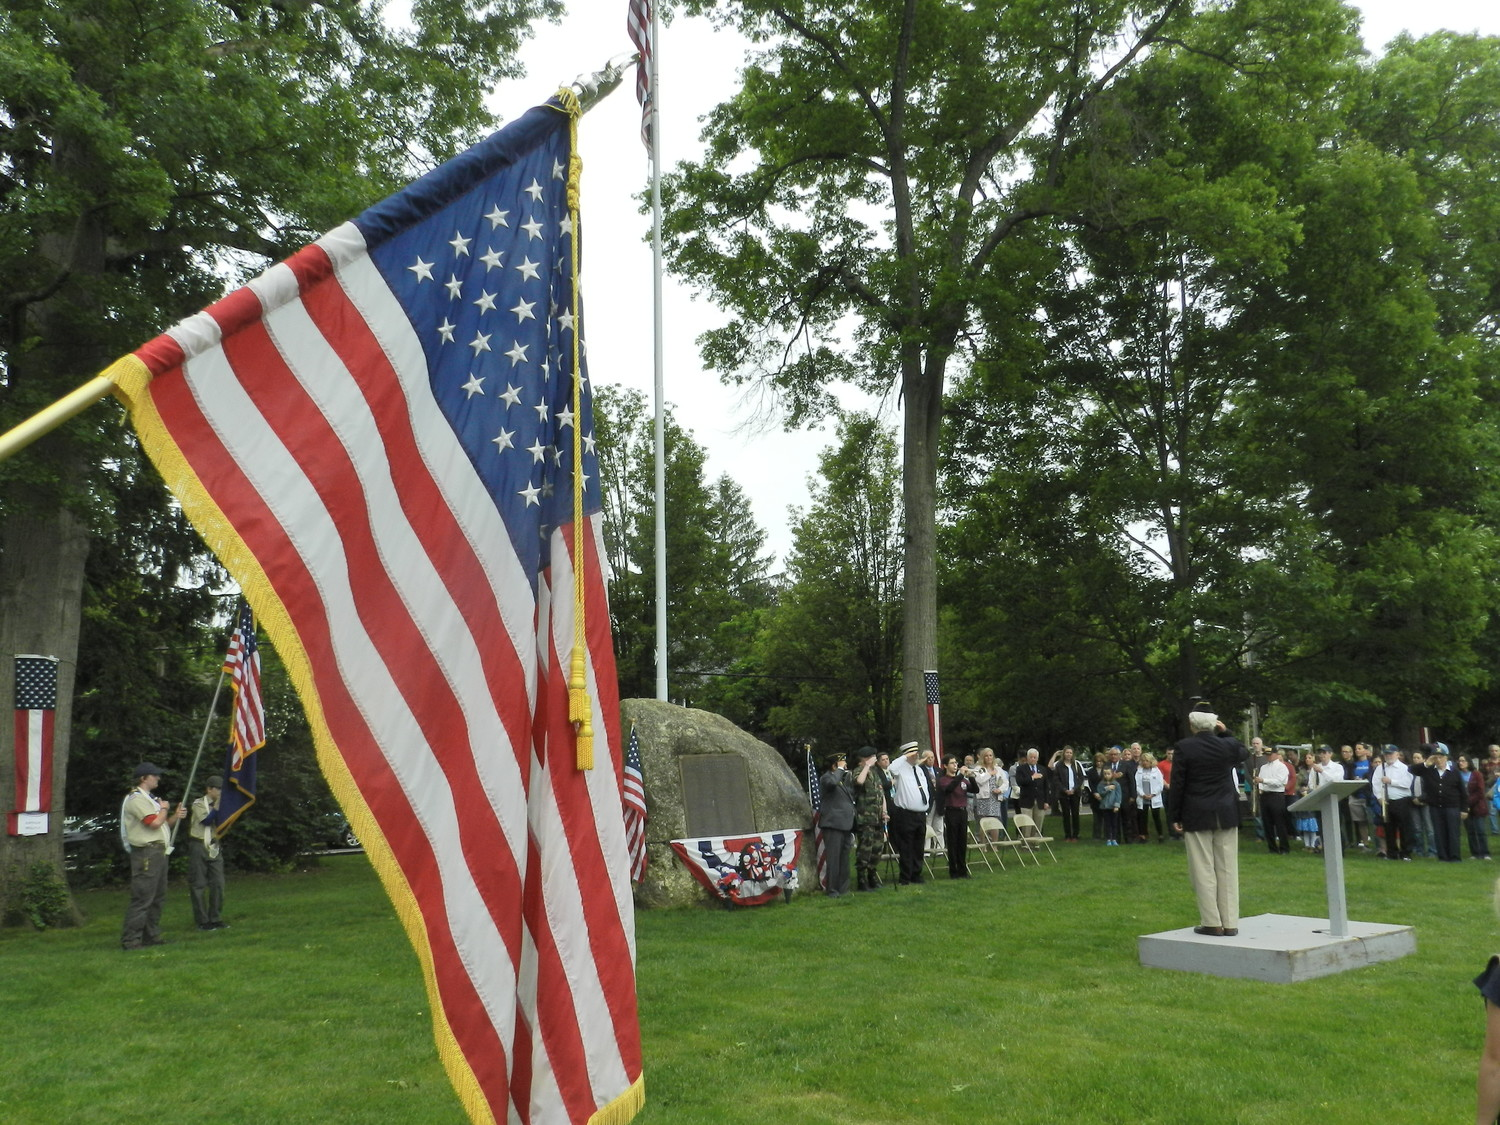 American Legion Commander Phil Como, on the podium, led a salute to honor the members of the military who have given their lives in service to the nation during a ceremony at Clifton Park on Monday.